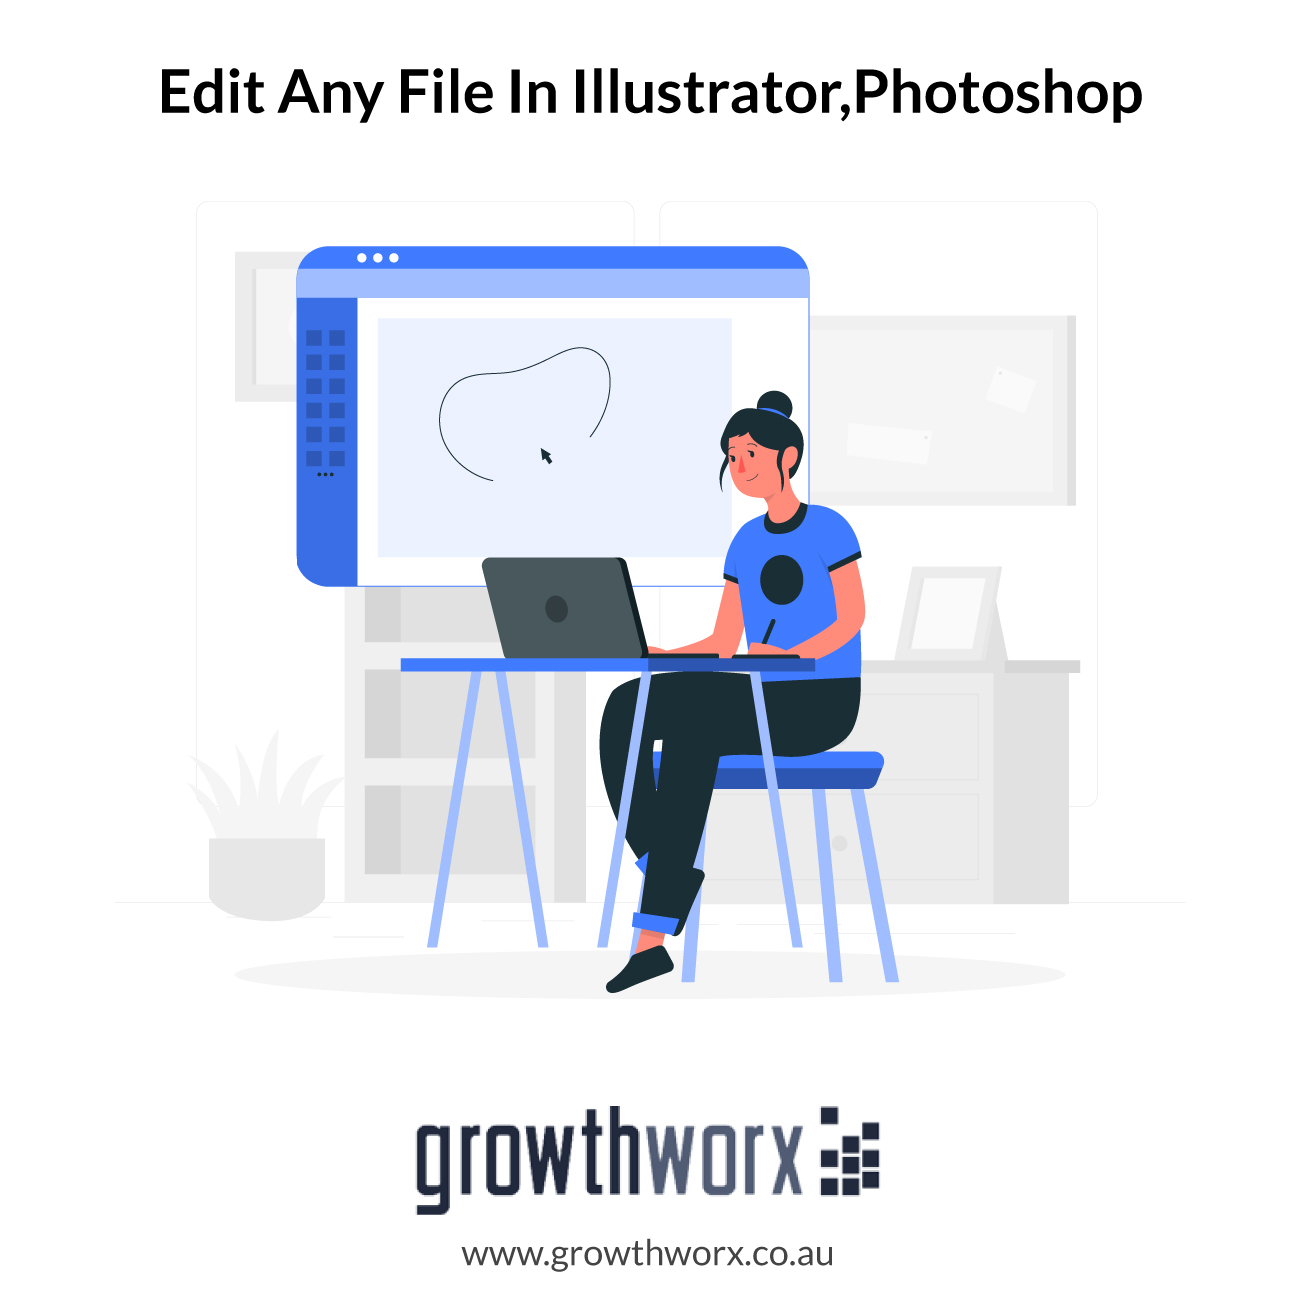 I will edit any file in illustrator,photoshop and indesign 1